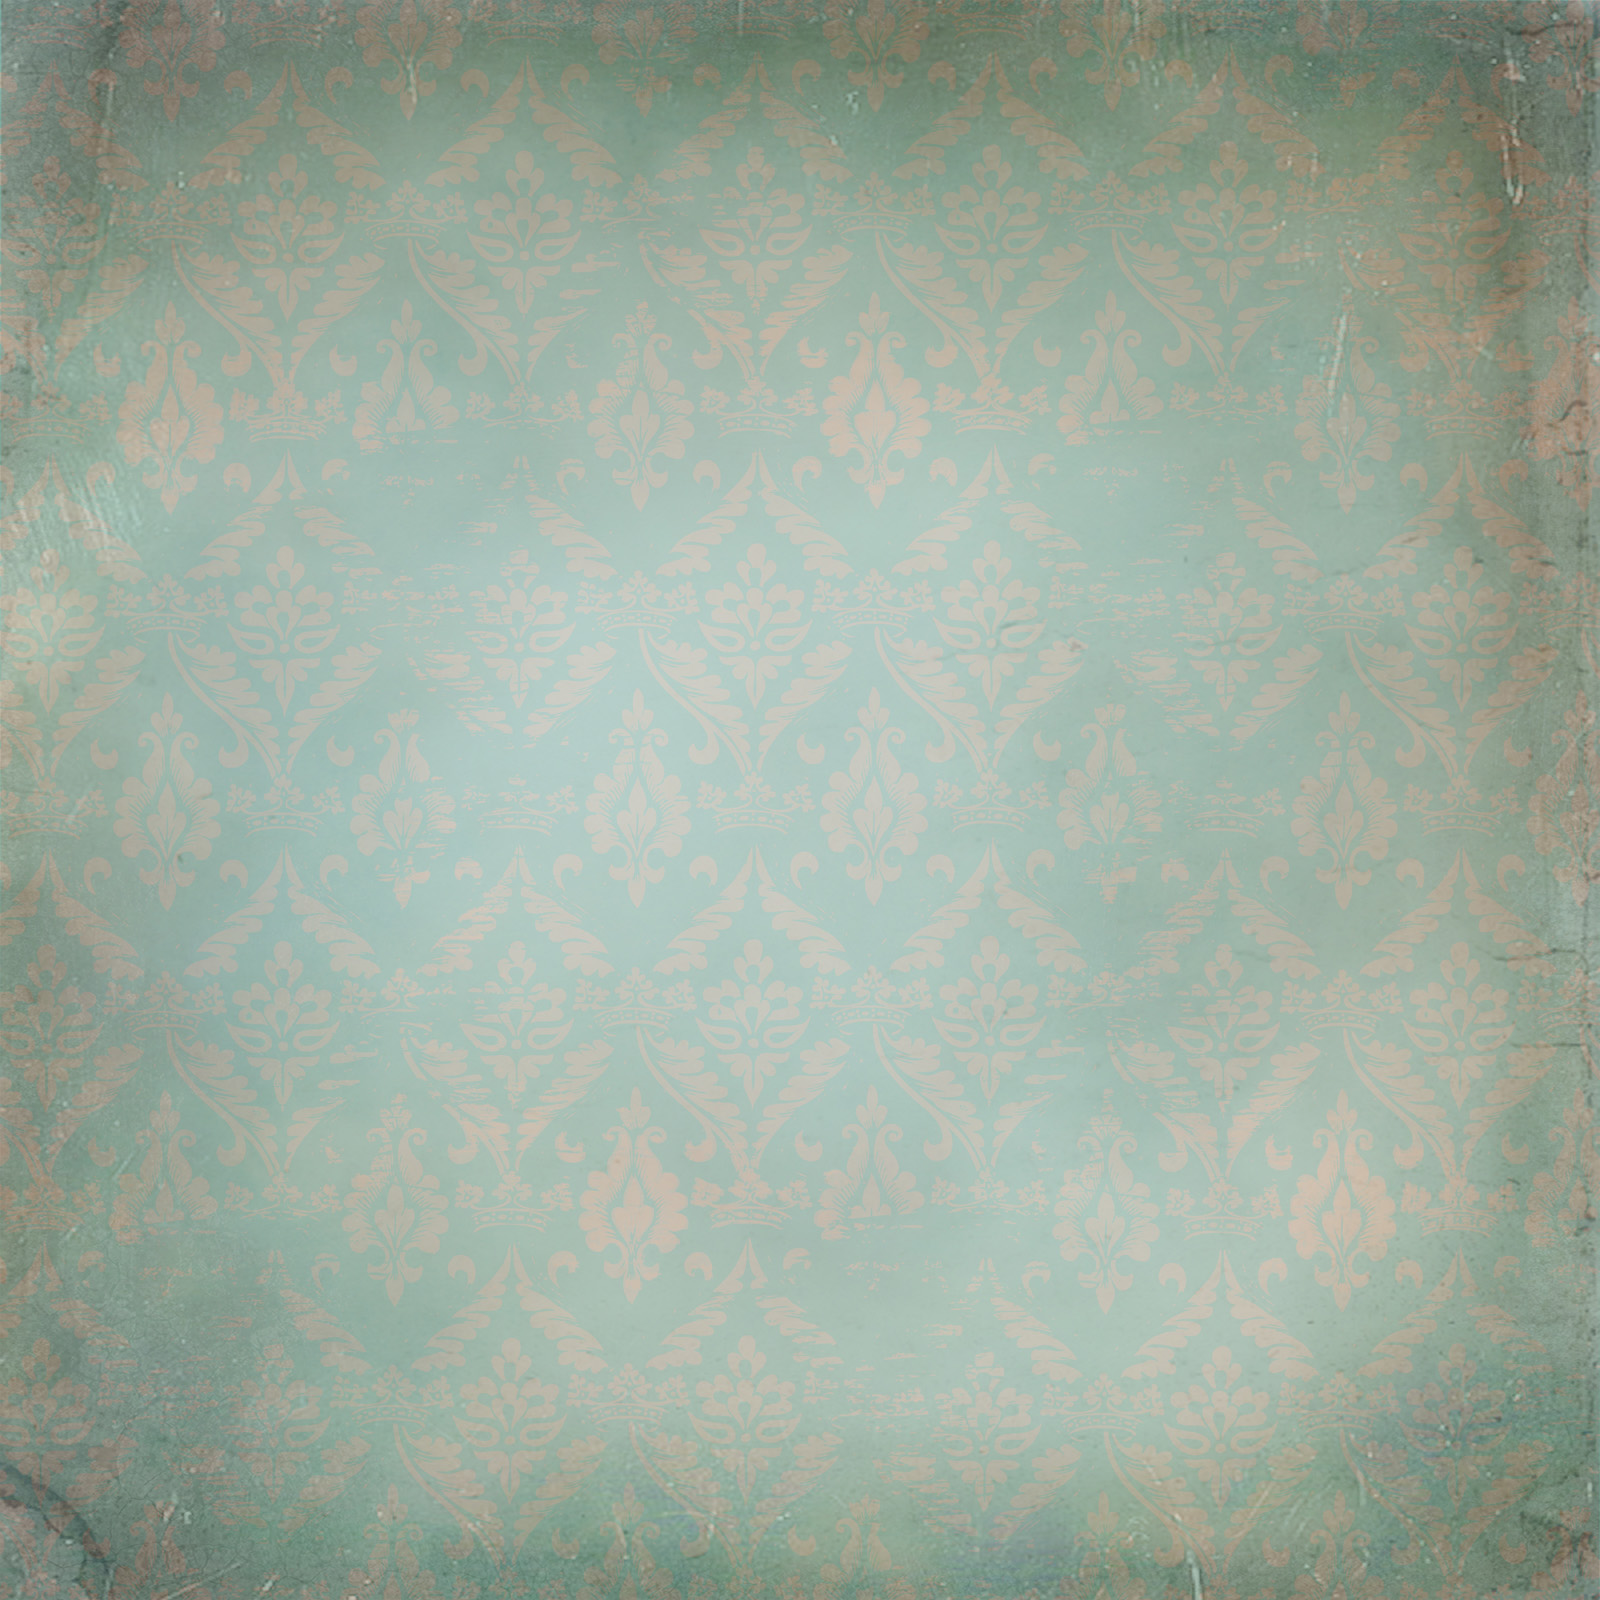 Retro styles patterns background 51724